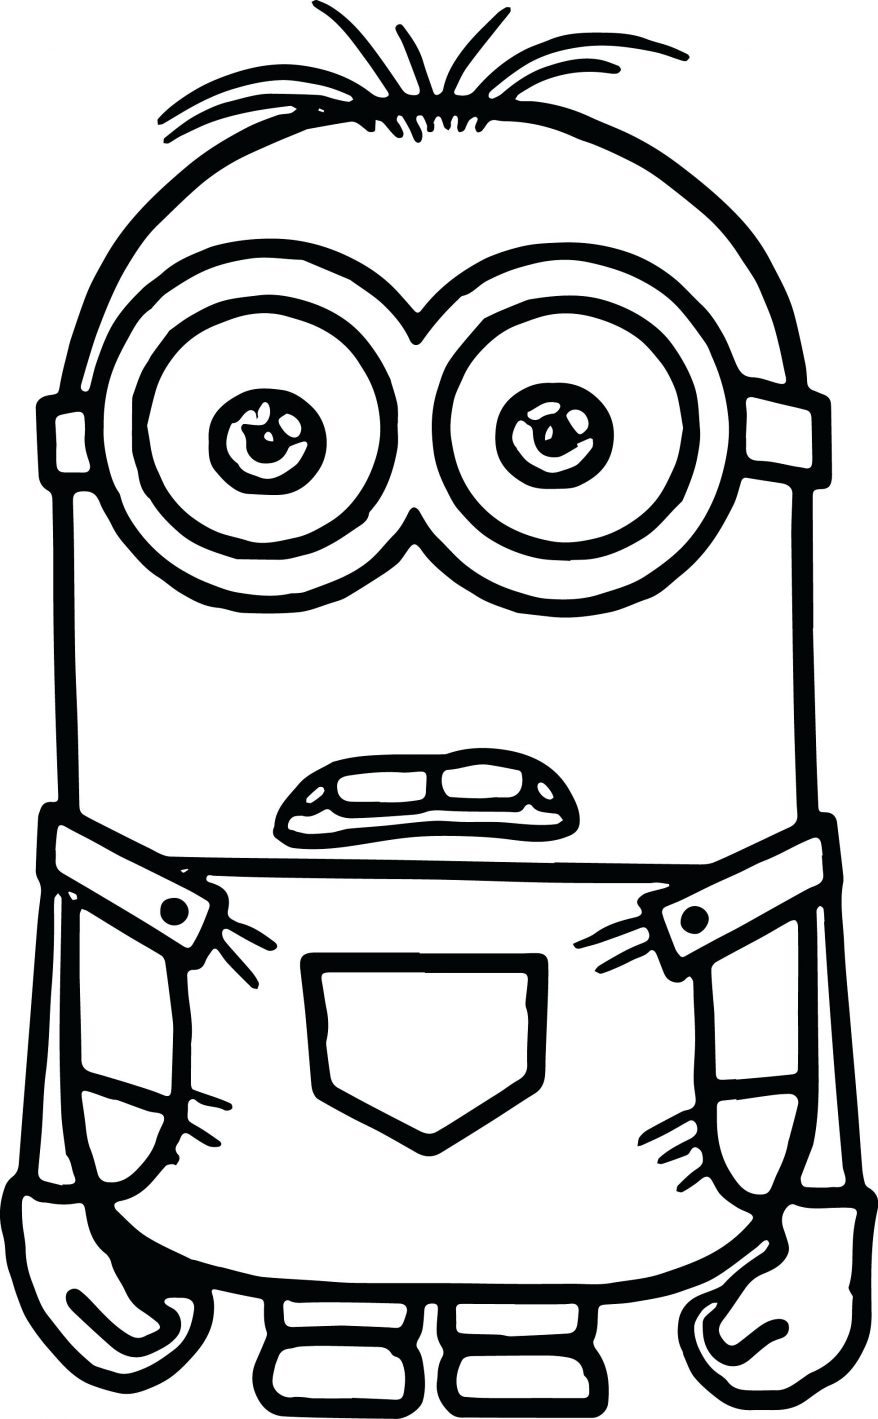 graphic relating to Free Printable Minions Eyes identified as Crimson Minions Drawing at  No cost for